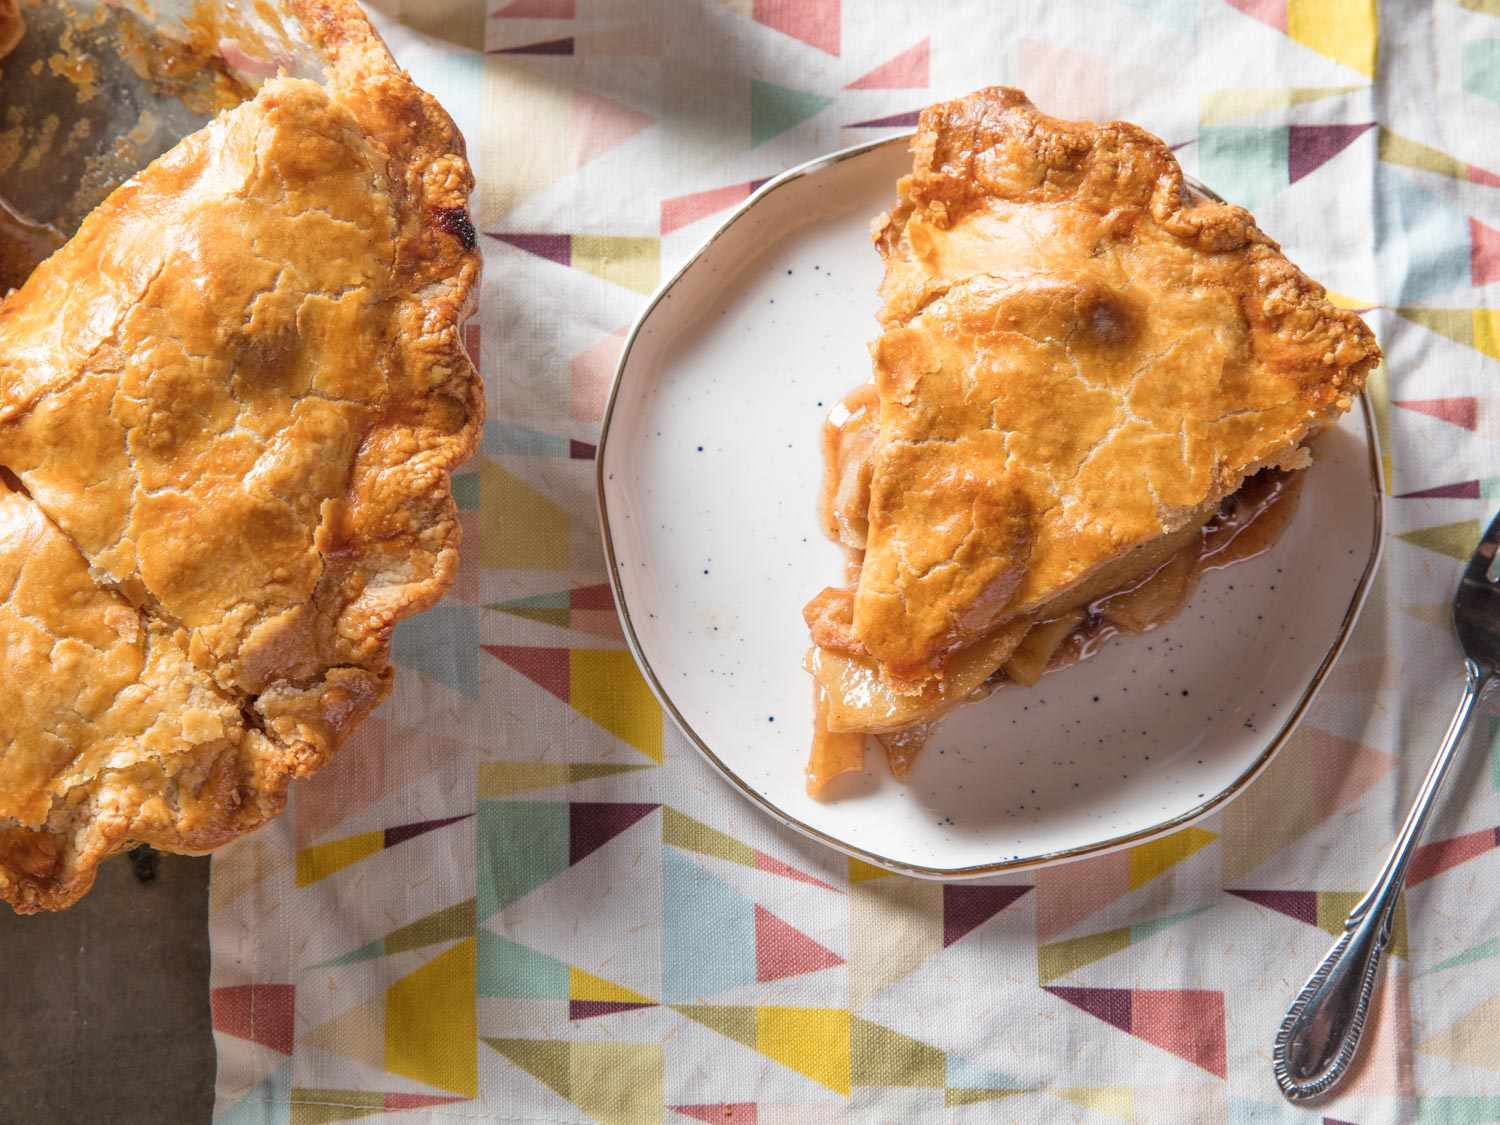 A wedge of apple pie on a plate, next to the rest of the pie